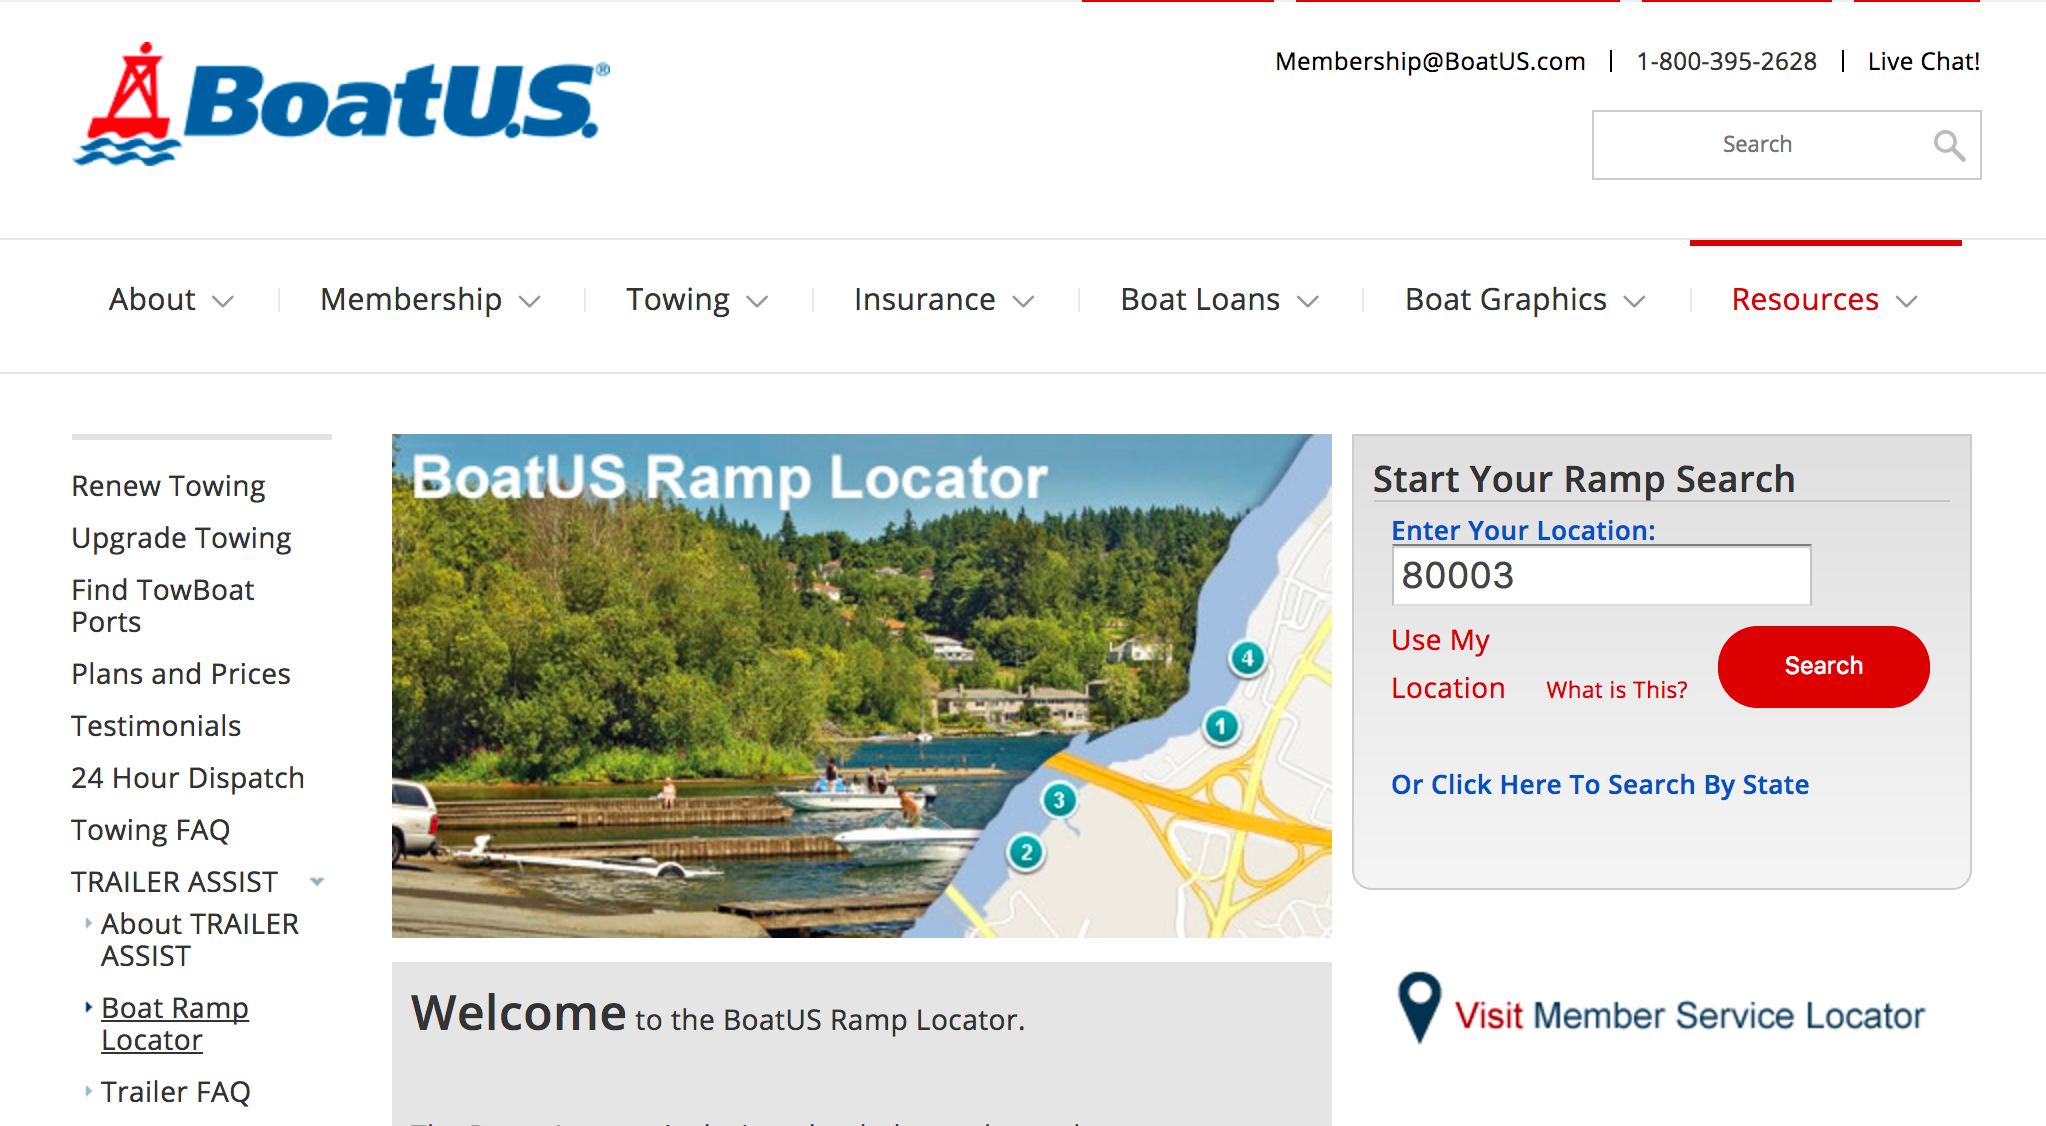 How to Find Boat Ramps Near You No Matter Where You Are